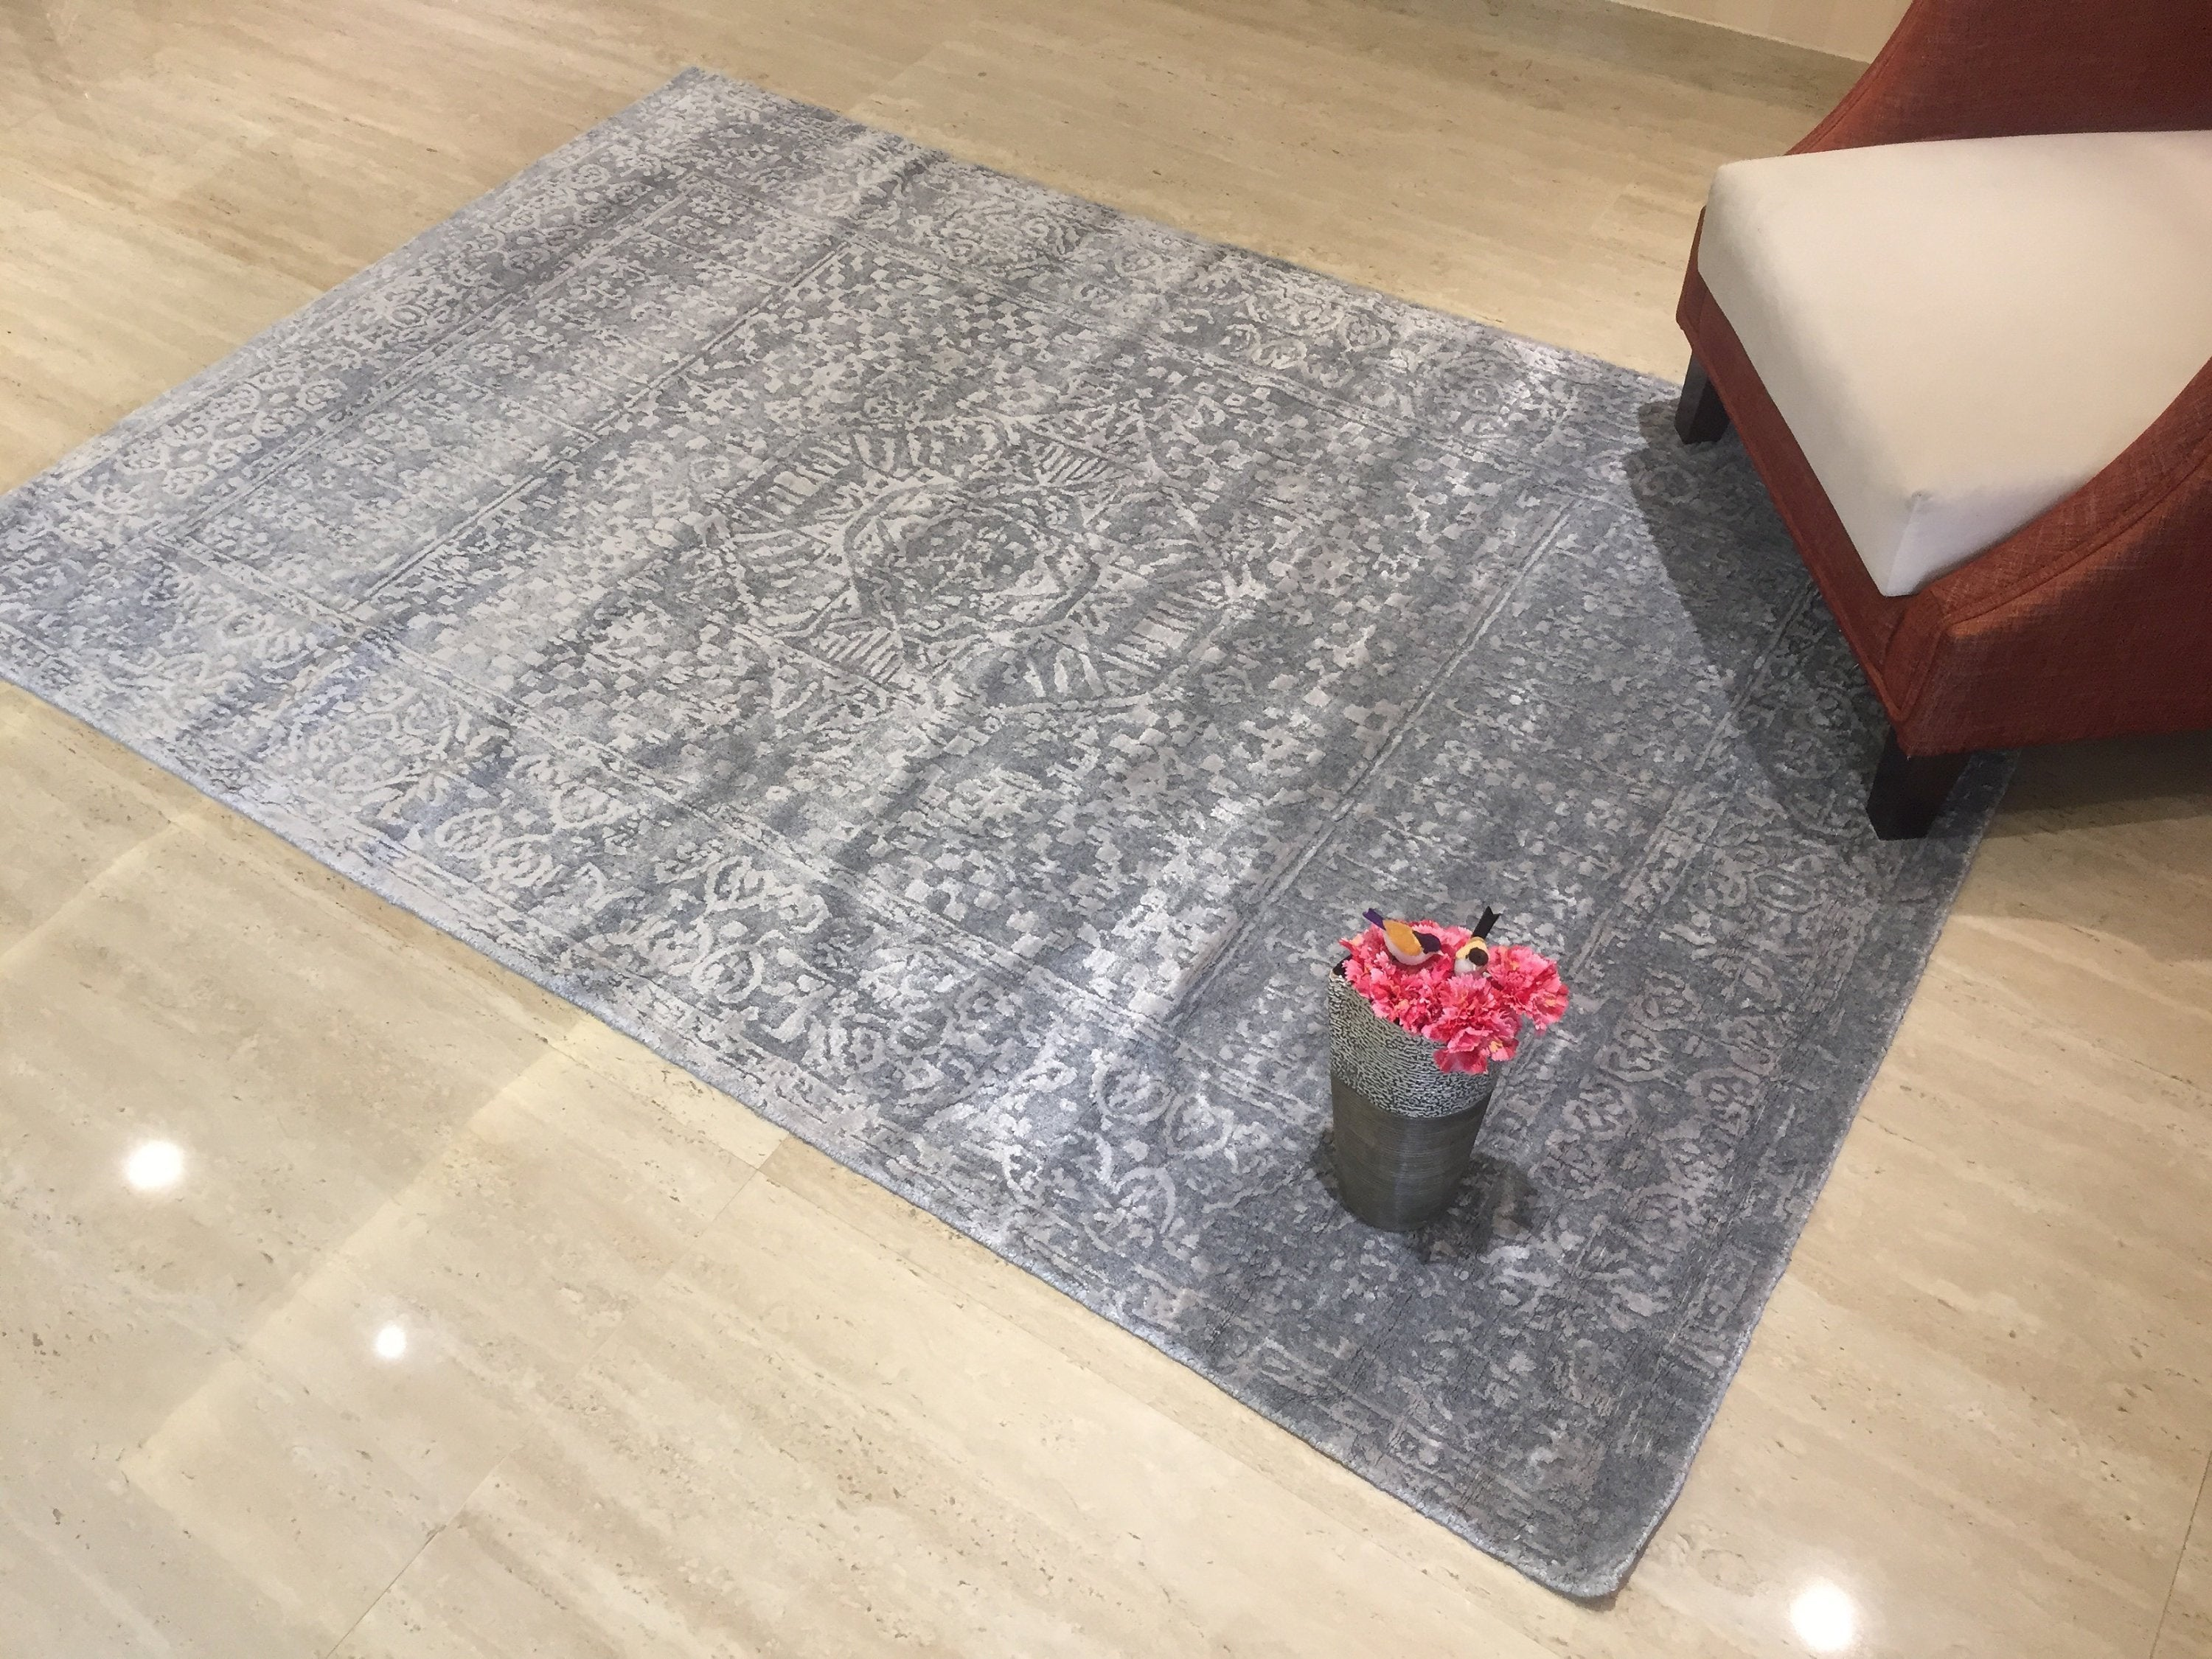 "Living room Geometric Design carpet Persian Hand knotted Housewarming Rug,gray Area Rug  Home Decor Wool Rug, 5'3"" X 7'6"" JK1320"